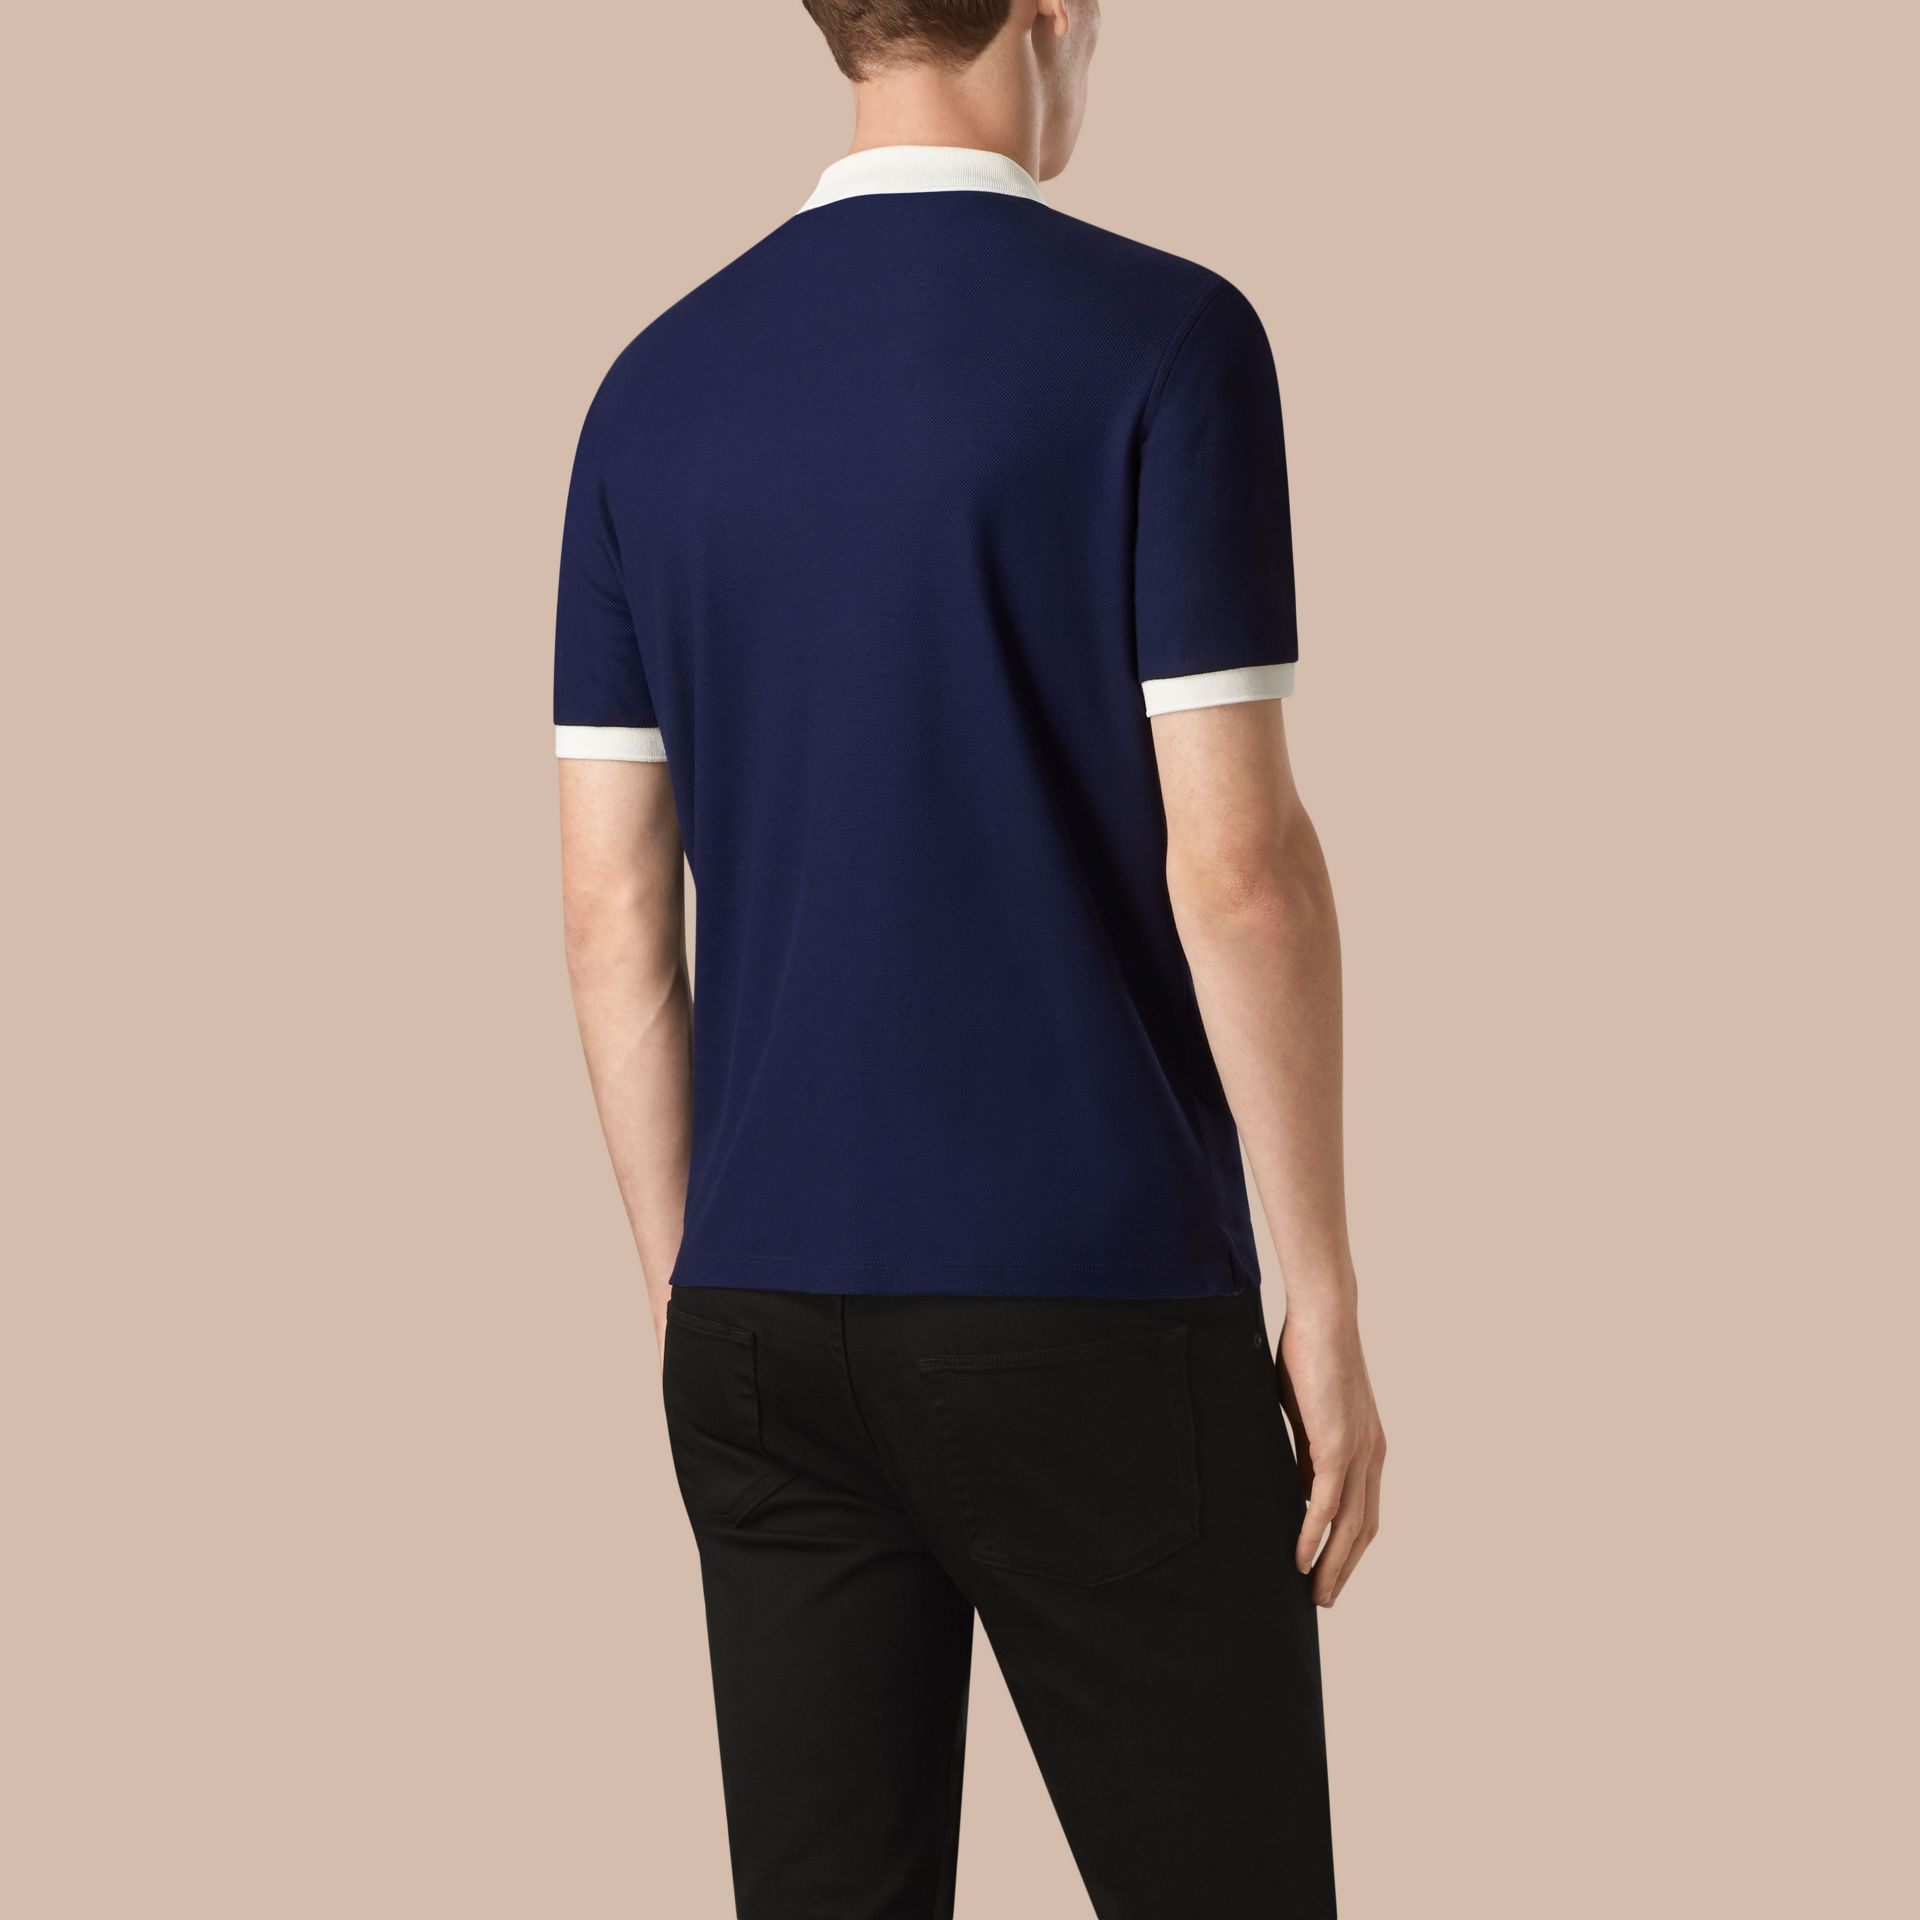 Navy blue/white Mercerised Cotton Piqué Polo Shirt Navy Blue/white - gallery image 2